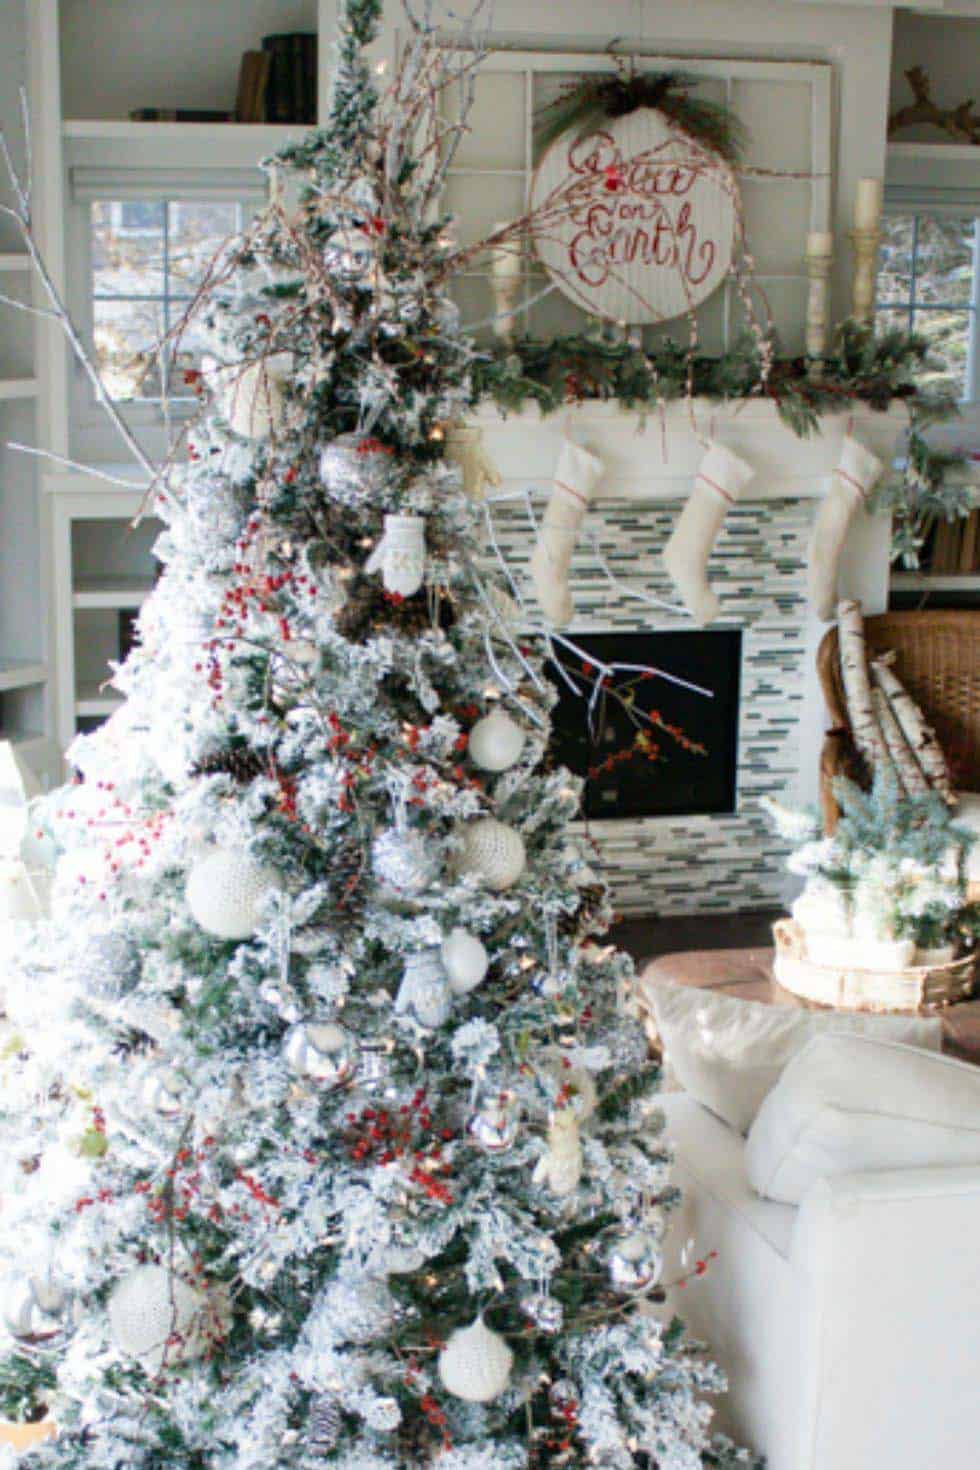 Astonishing 25 Absolutely Stunning White Christmas Tree Decorating Ideas Download Free Architecture Designs Rallybritishbridgeorg